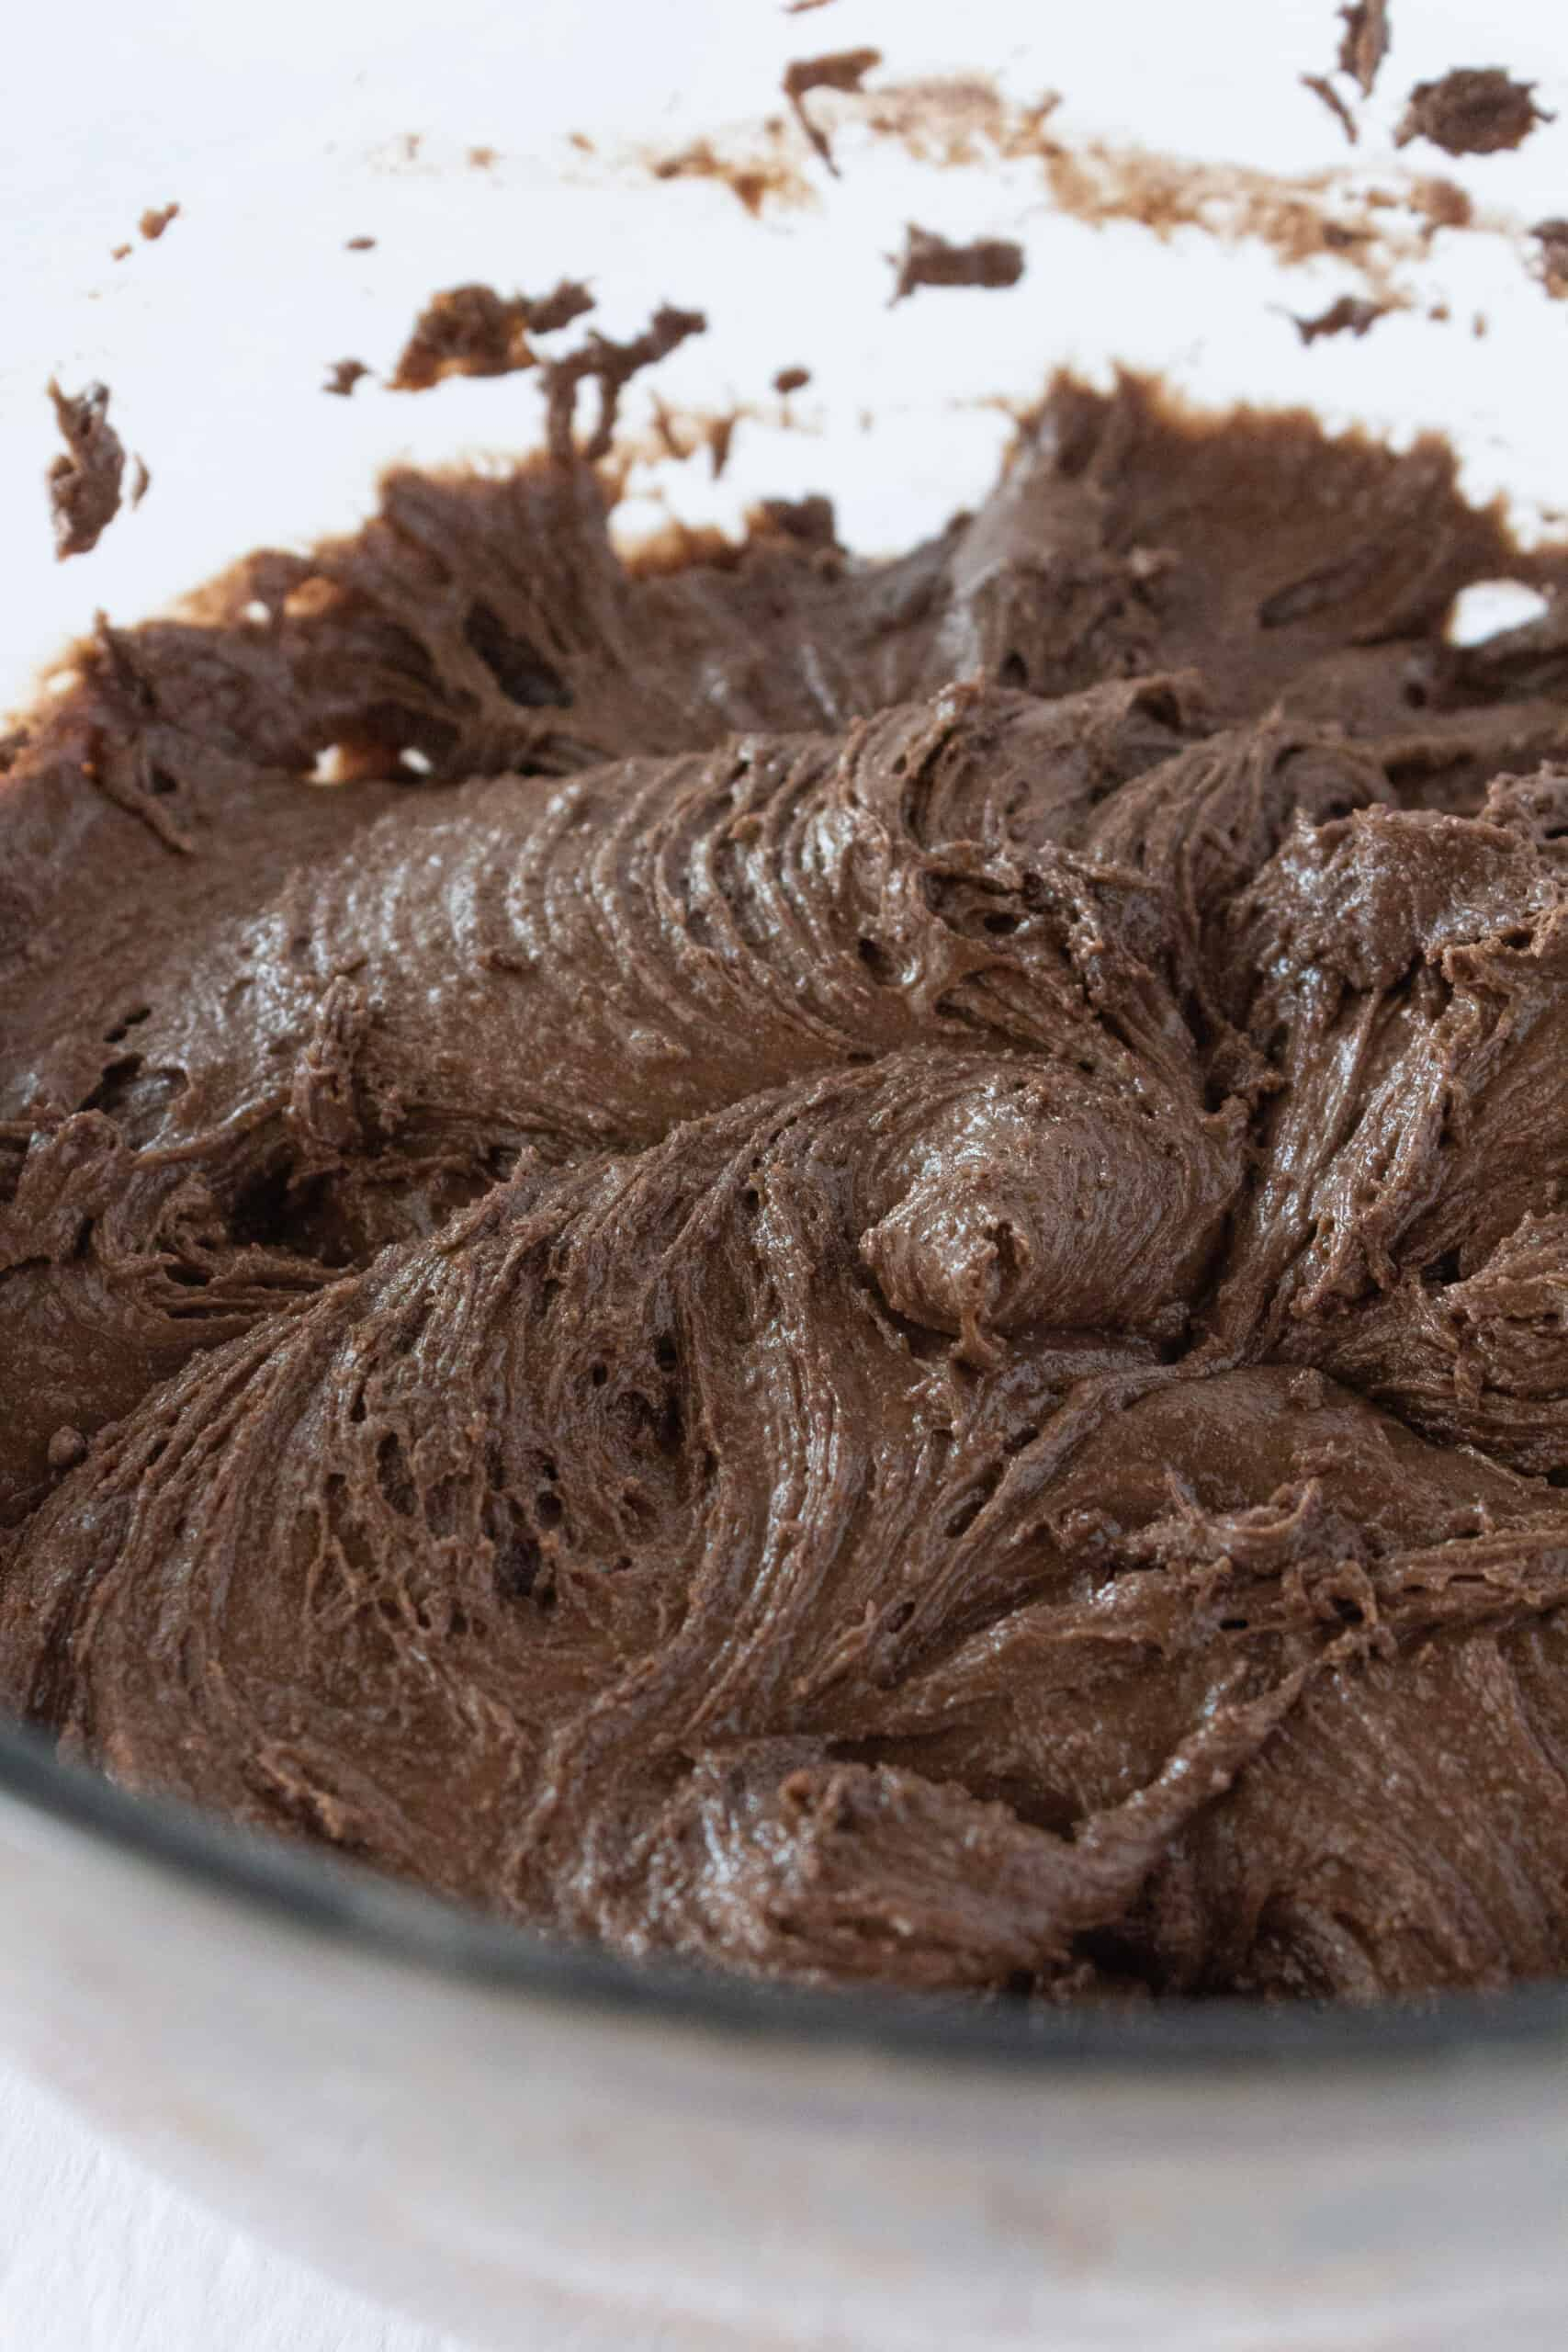 Chocolate Cheesecake Cookies made with a Cake Mix, a recipe featured by top US cookies blogger, Practically Homemade